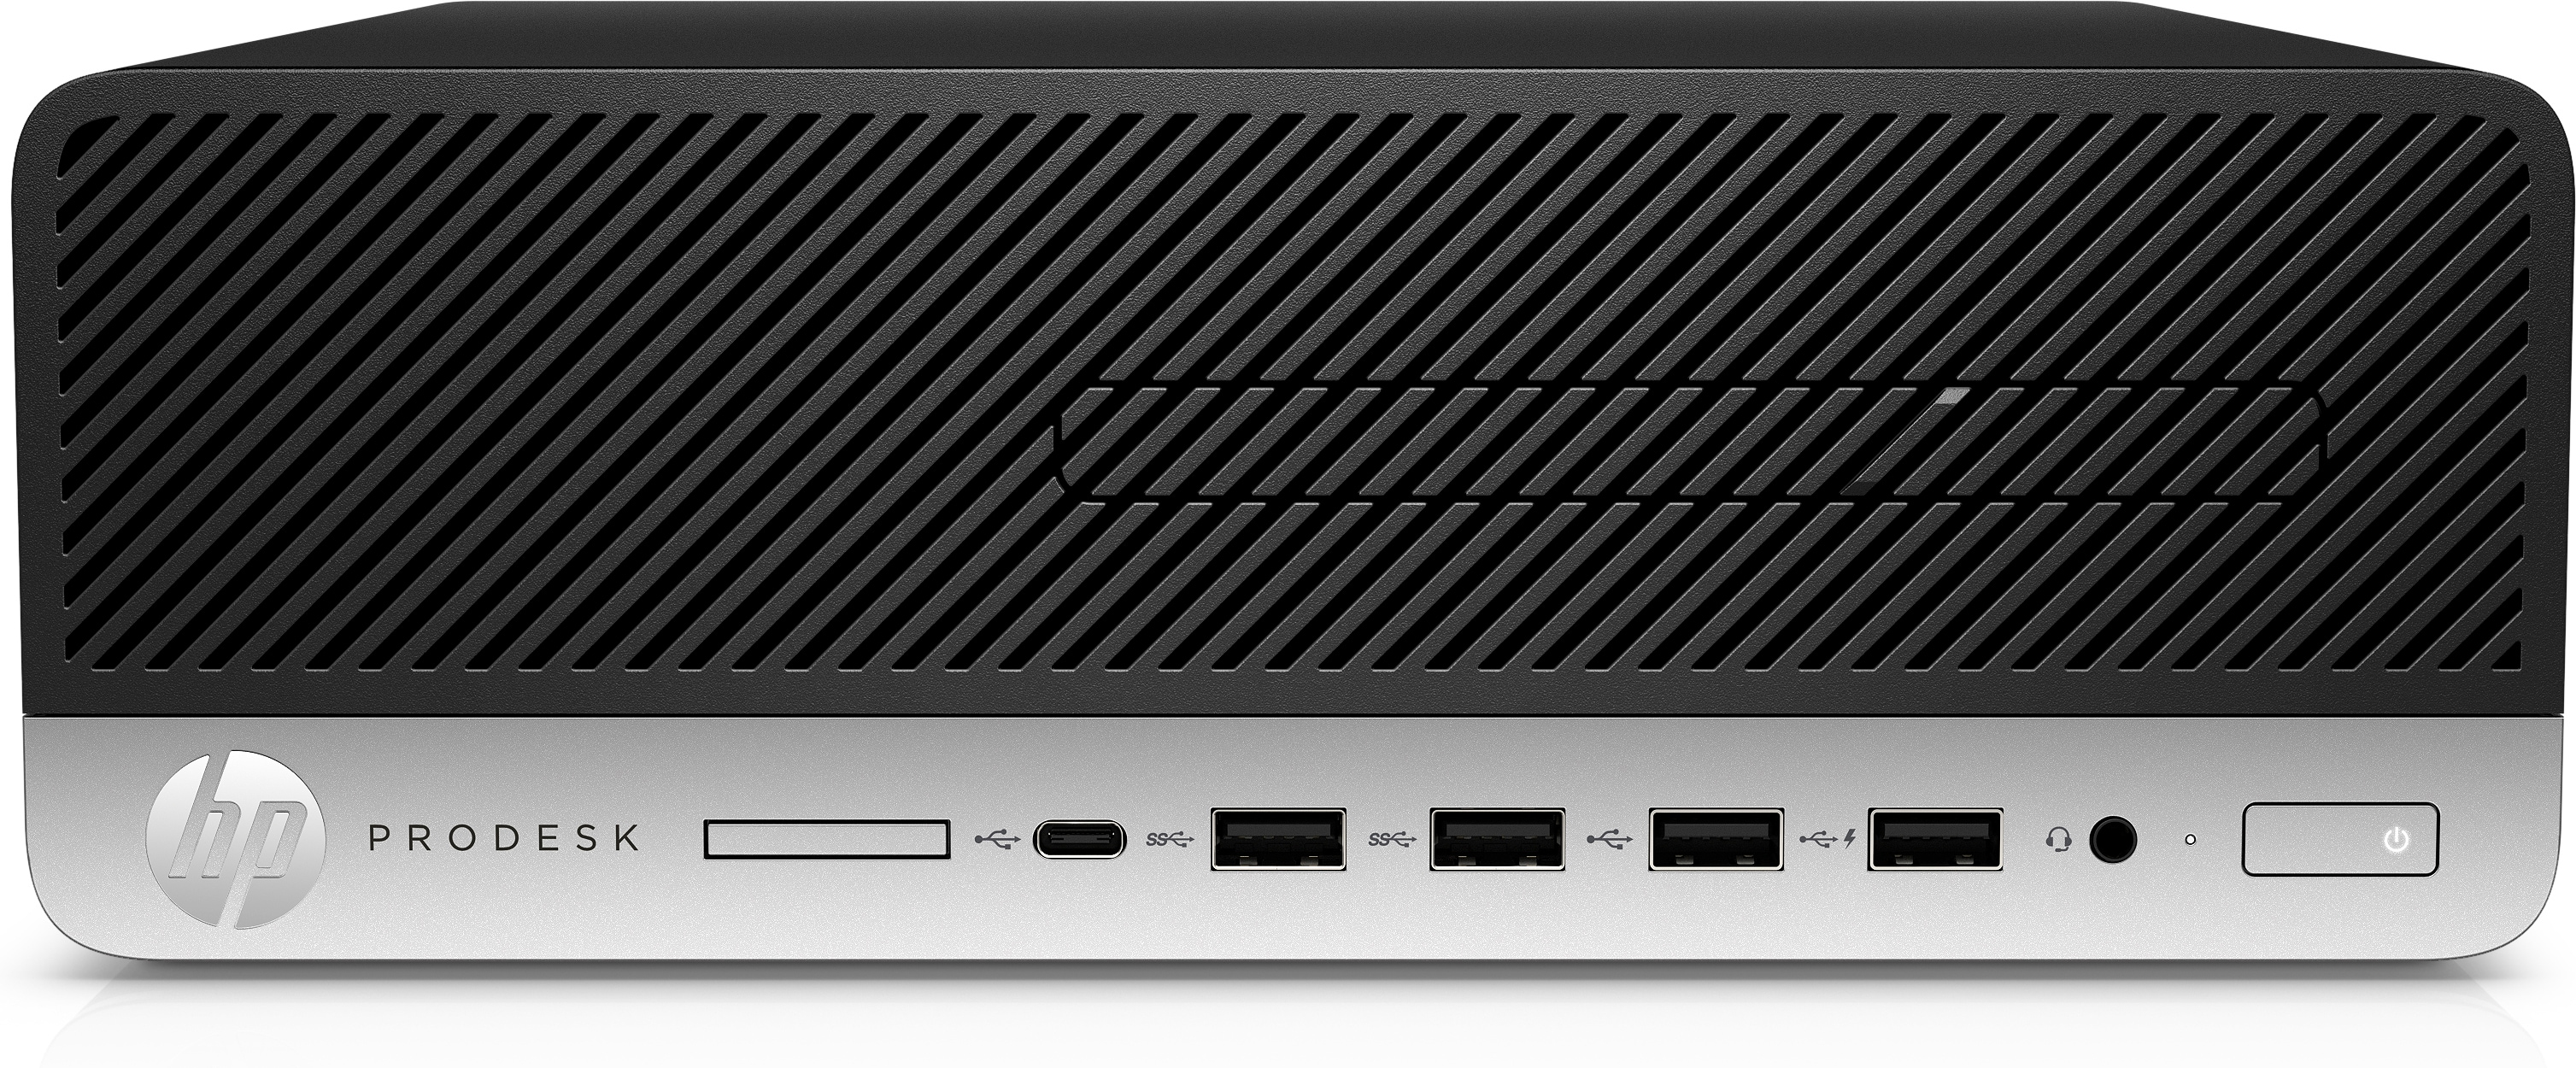 HP ProDesk 405 G4 Small Form Factor PC (9DN71EA) black silver